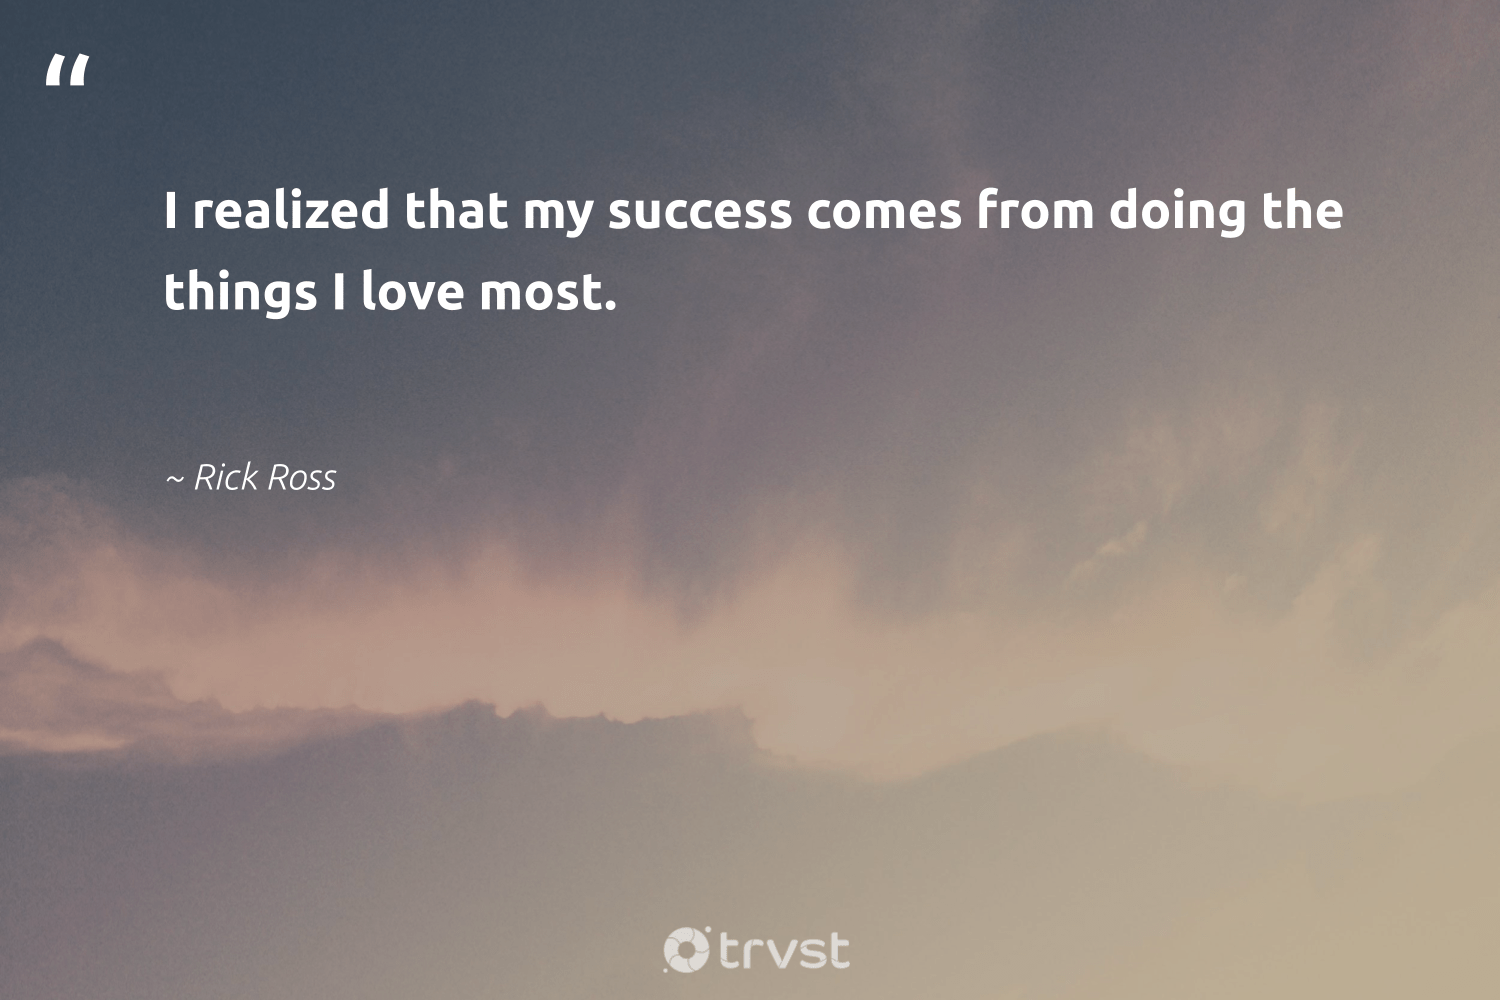 """""""I realized that my success comes from doing the things I love most.""""  - Rick Ross #trvst #quotes #love #success #goals #suceeed #softskills #planetearthfirst #productive #successful #nevergiveup #beinspired"""